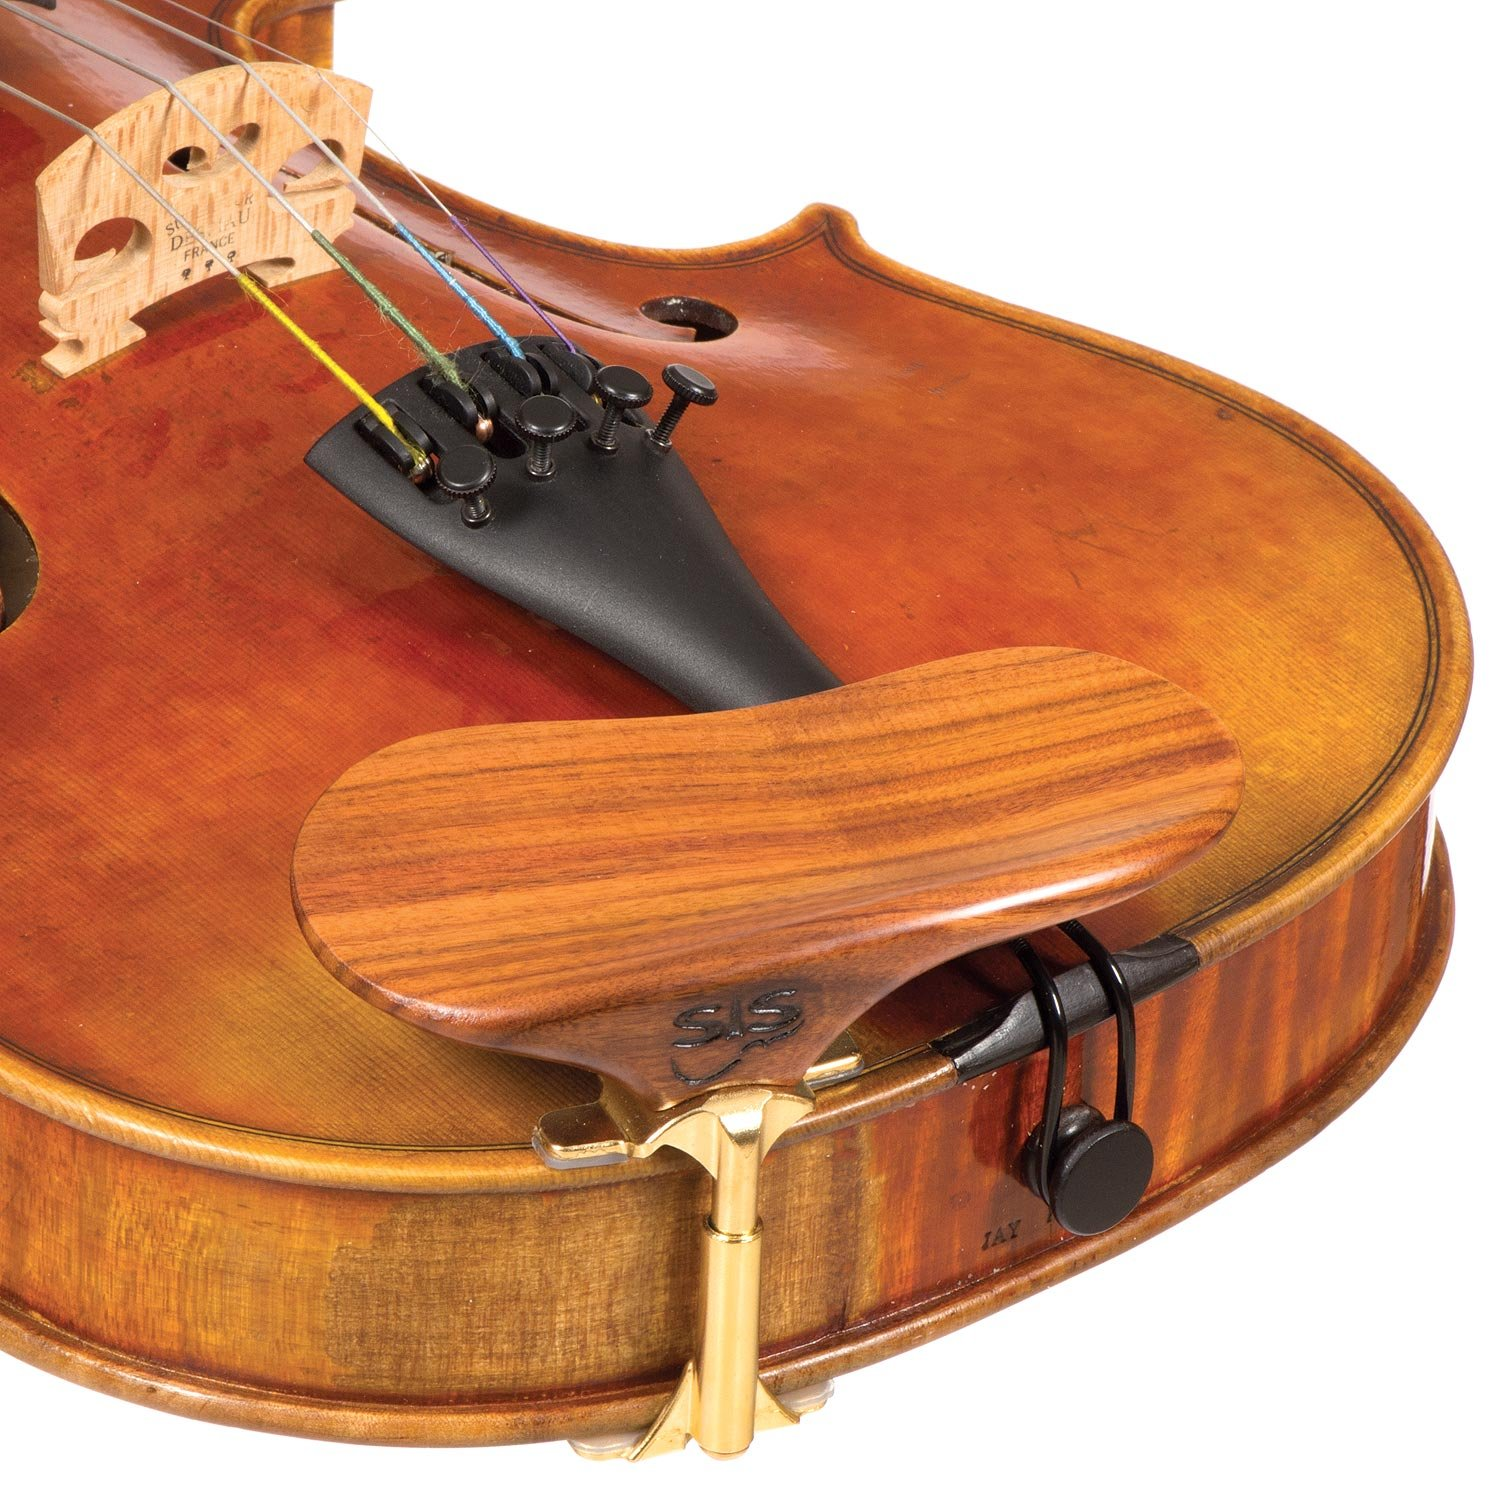 SAS Rosewood Chinrest for 3/4-4/4 Violin or Viola with 24mm Plate Height and Goldplated Bracket BHBU0503A560